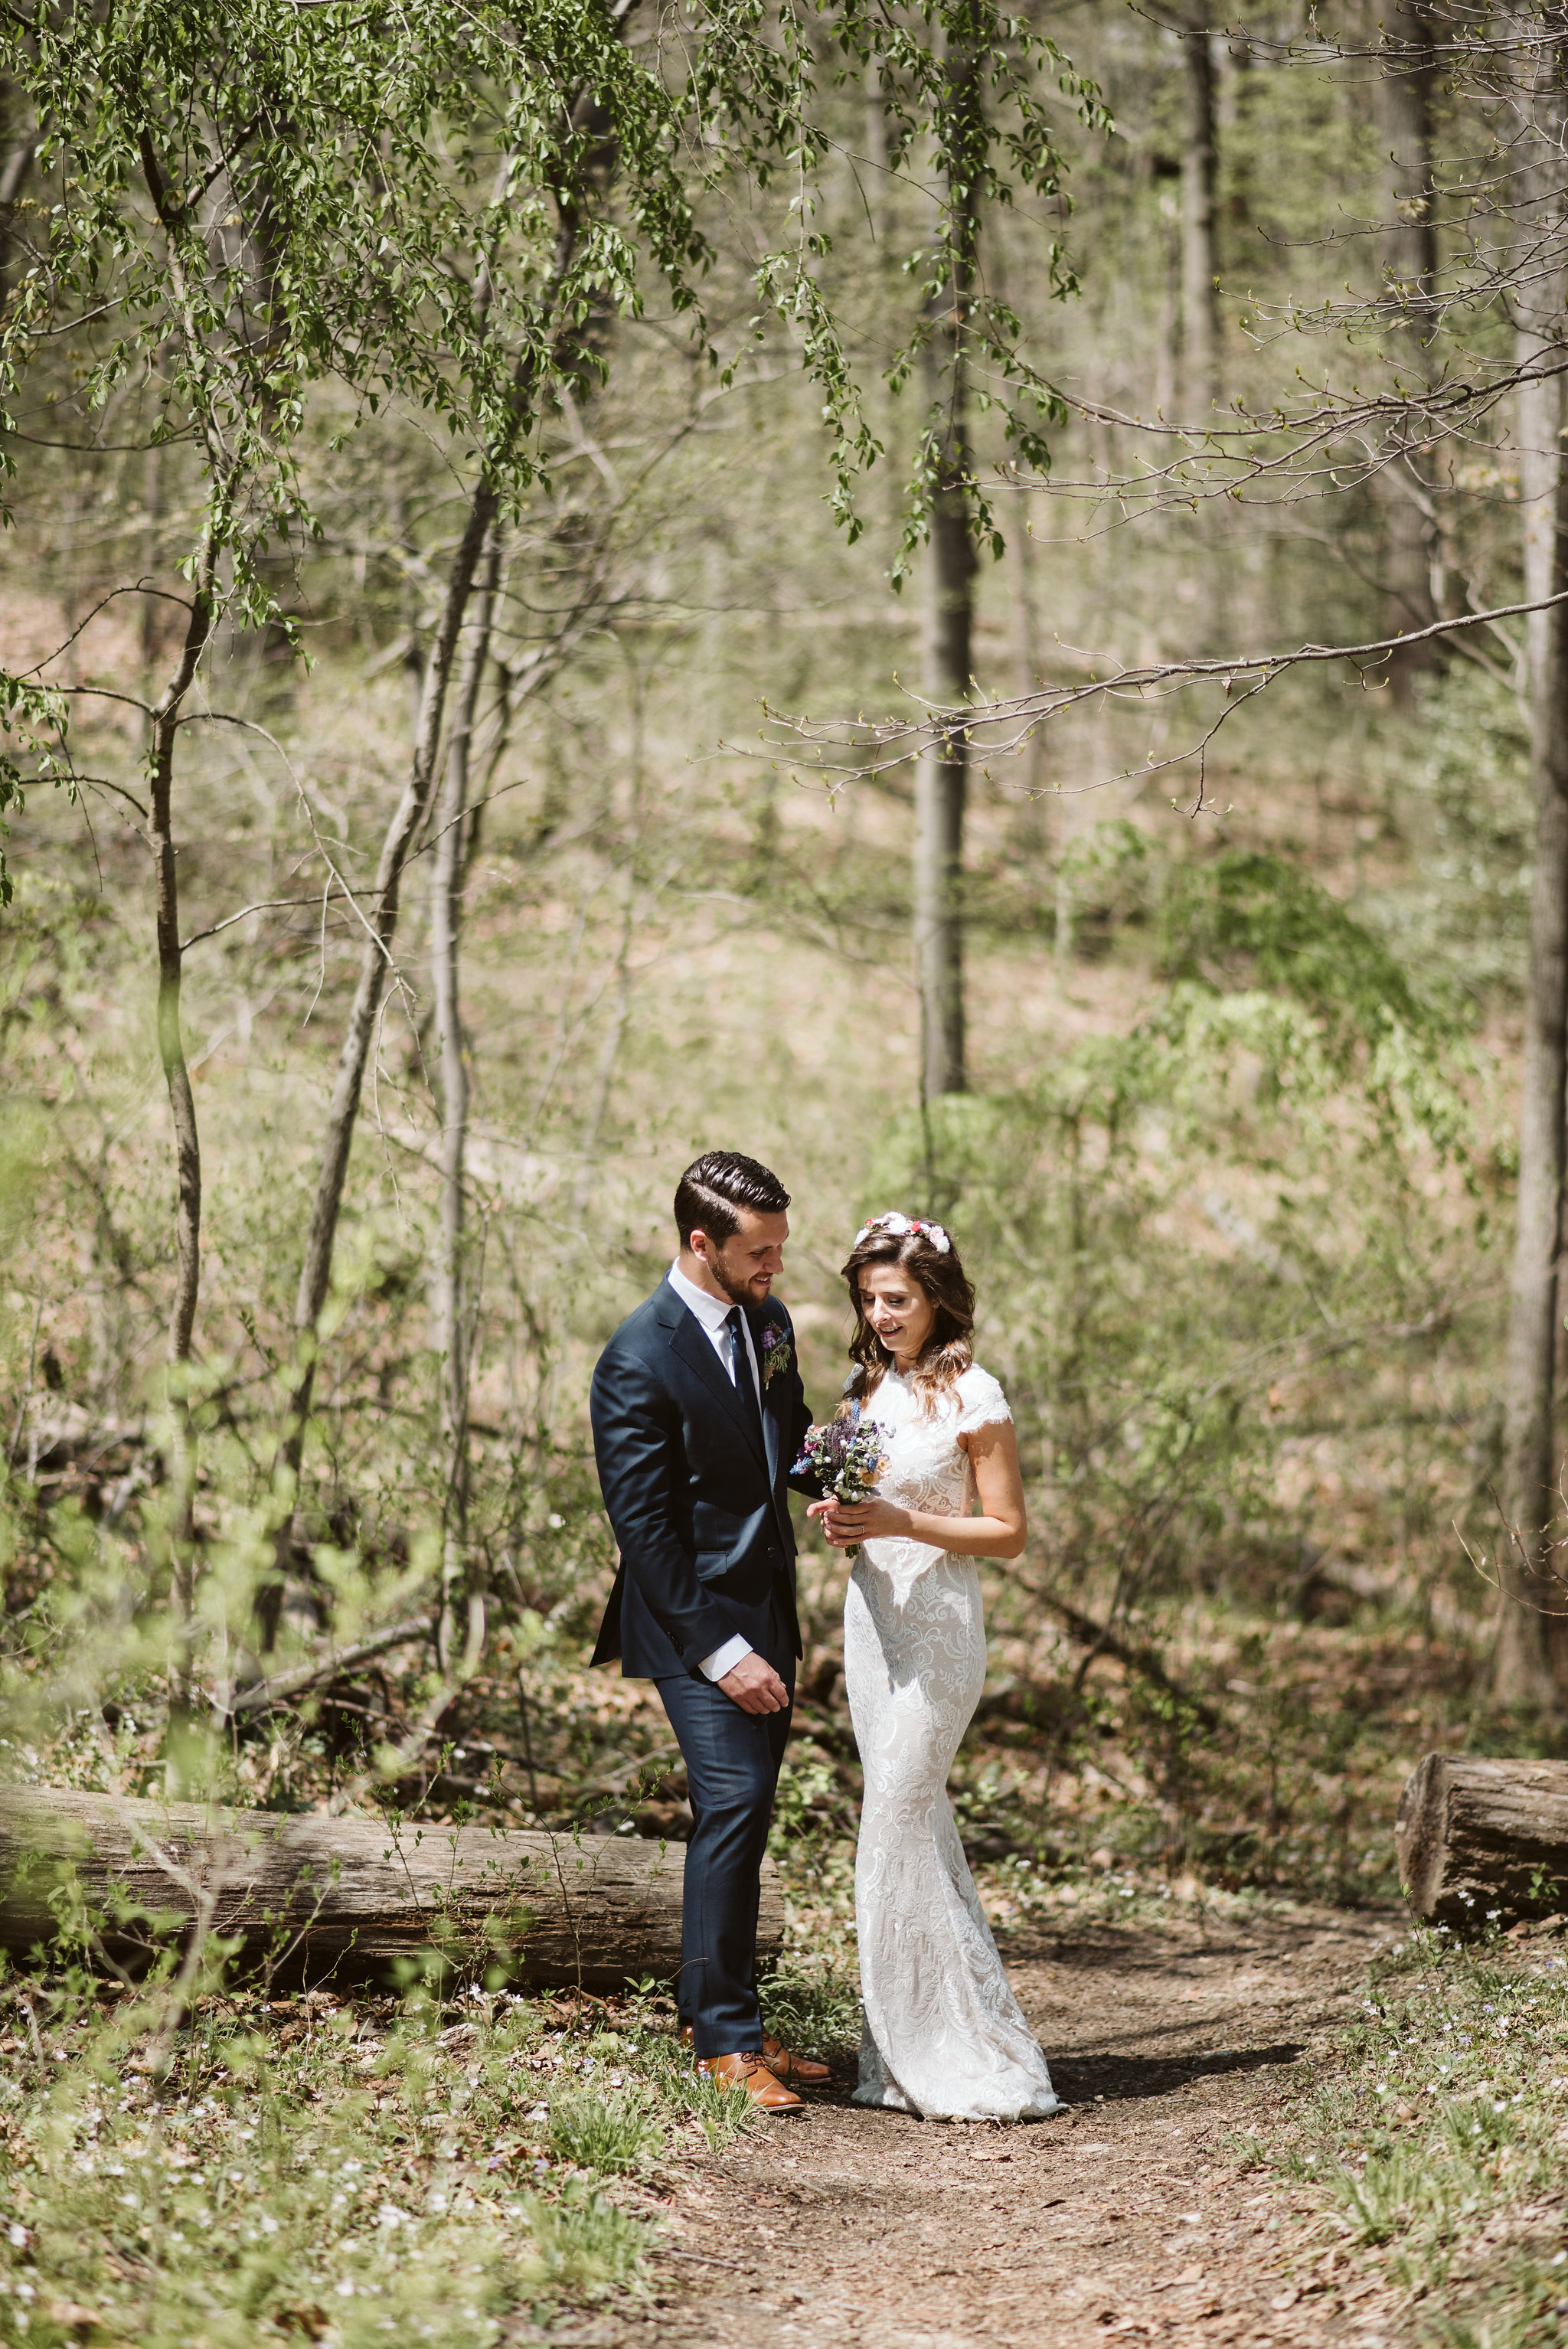 Spring Outdoor Wedding, Park, Baltimore Wedding Photographer, DIY, Classic, Upcycled, Garden Party, Romantic, Bride and Groom Laughing Together, BHLDN Wedding Dress, Just Married, Wildflowers